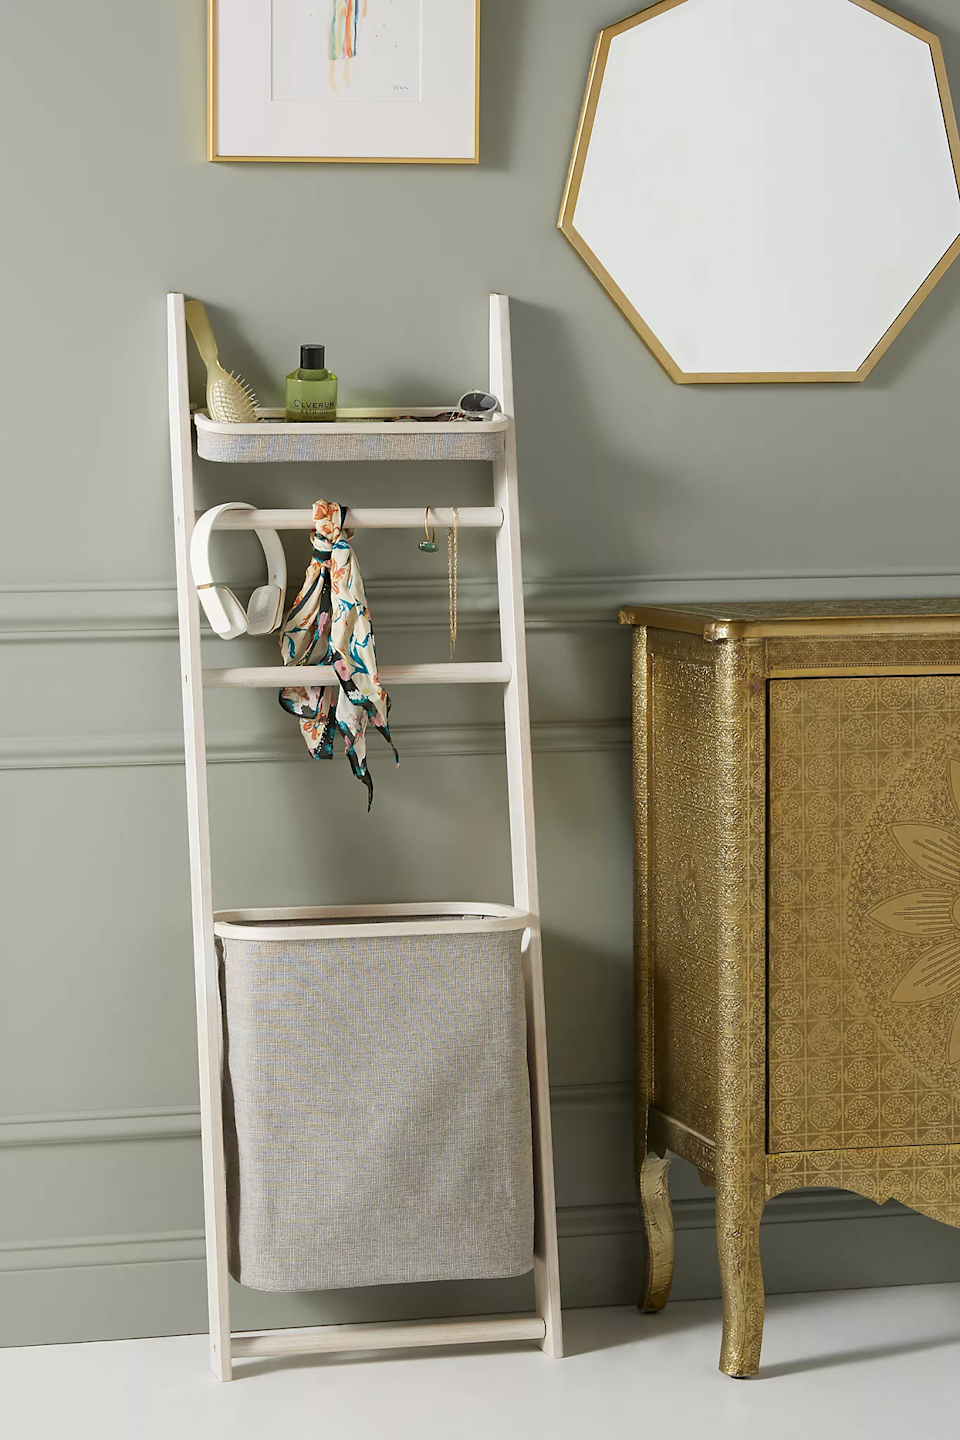 "<h3><a href=""https://www.pbteen.com/products/wall-leaning-storage-rack-with-hamper/"" rel=""nofollow noopener"" target=""_blank"" data-ylk=""slk:Lotus Leaning Storage Rack"" class=""link rapid-noclick-resp"">Lotus Leaning Storage Rack</a></h3> <br><strong>When your bathroom isn't built for storage: </strong>Take advantage of an empty wall with this incredibly functional and space-efficient leaning tower with a built-in laundry hamper, towel rack, a shelf.<br><br><strong>Anthropologie</strong> Lotus Leaning Storage Rack, $, available at <a href=""https://go.skimresources.com/?id=30283X879131&url=https%3A%2F%2Fwww.anthropologie.com%2Fshop%2Flotus-leaning-storage-rack"" rel=""nofollow noopener"" target=""_blank"" data-ylk=""slk:Anthropologie"" class=""link rapid-noclick-resp"">Anthropologie</a>"